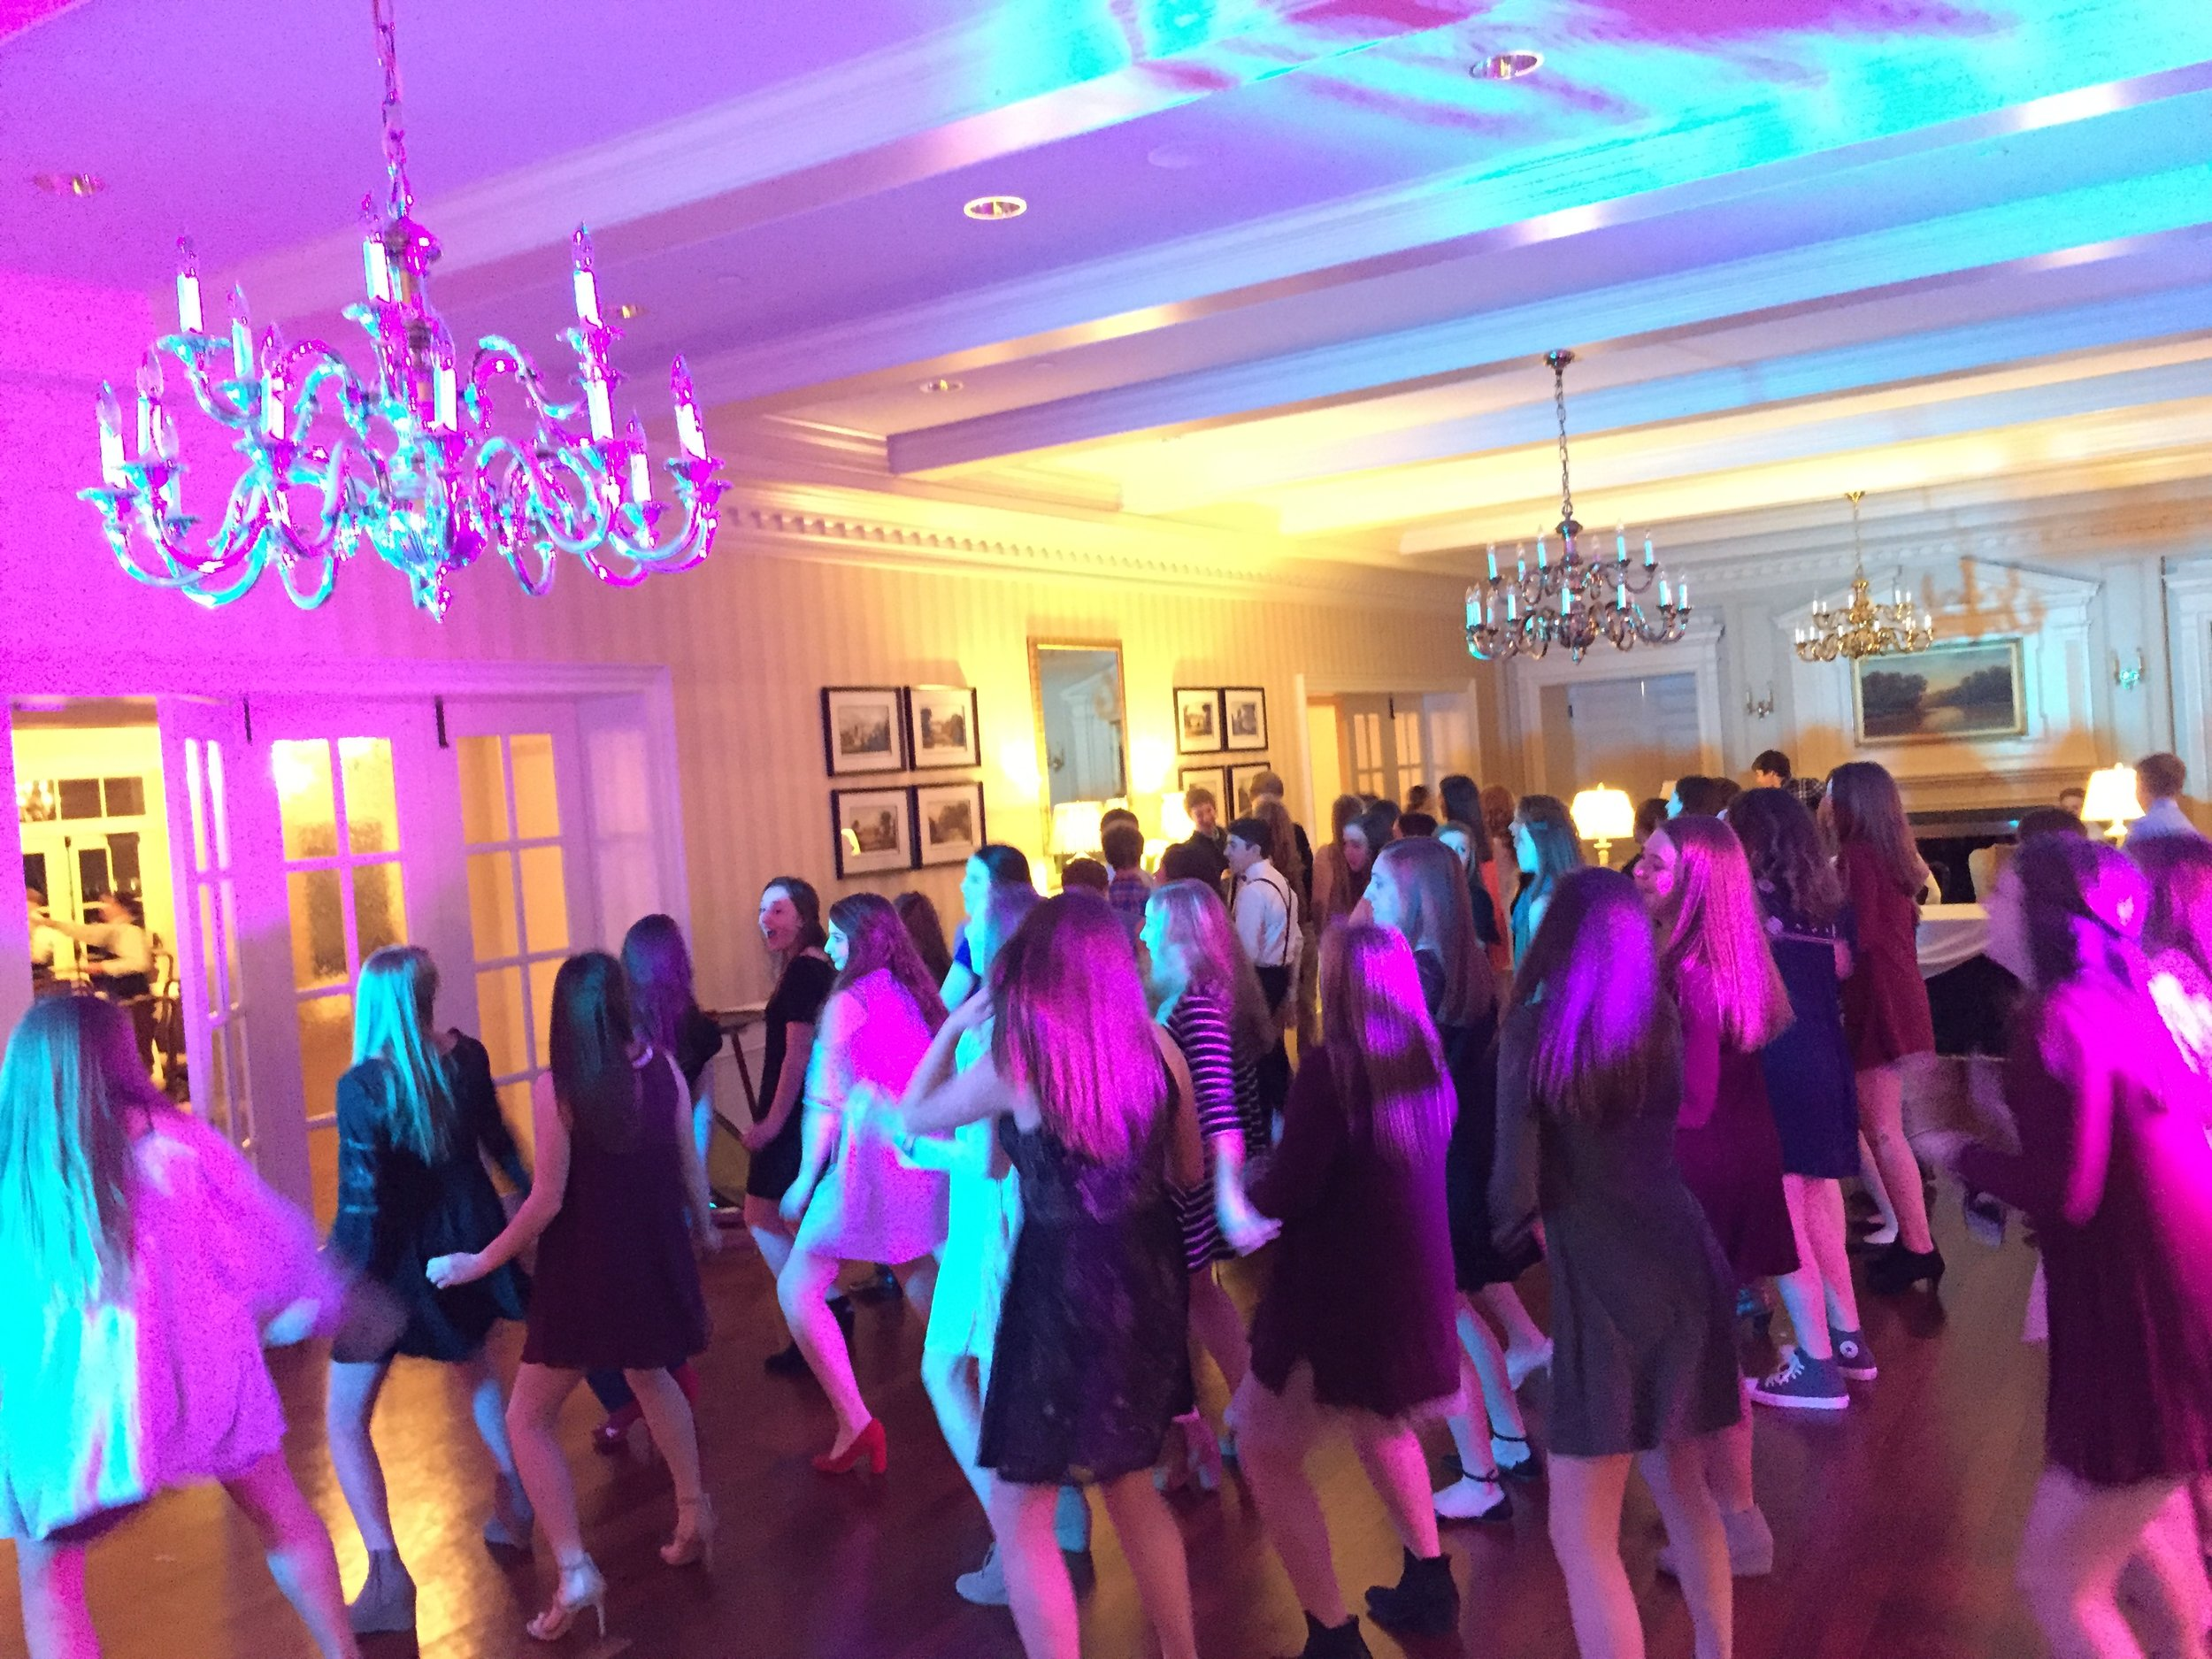 Matt Ryan Mobile DJ Entertainment is Columbus' premiere disc-jockey service, specializing in youth and teen events